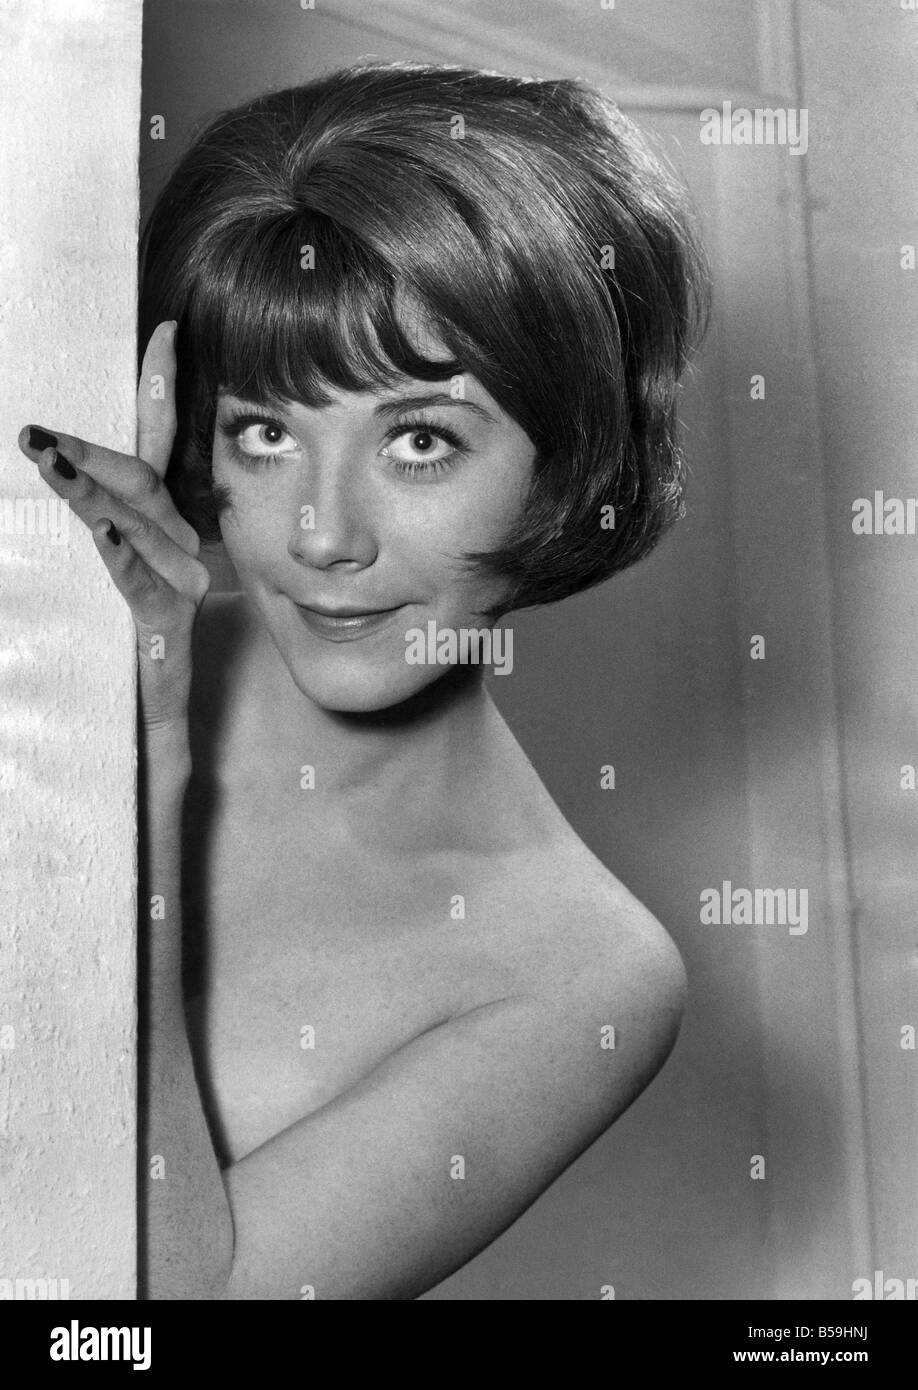 Actress linda thorson as a brunette january 1968 p008075 stock actress linda thorson as a brunette january 1968 p008075 thecheapjerseys Image collections